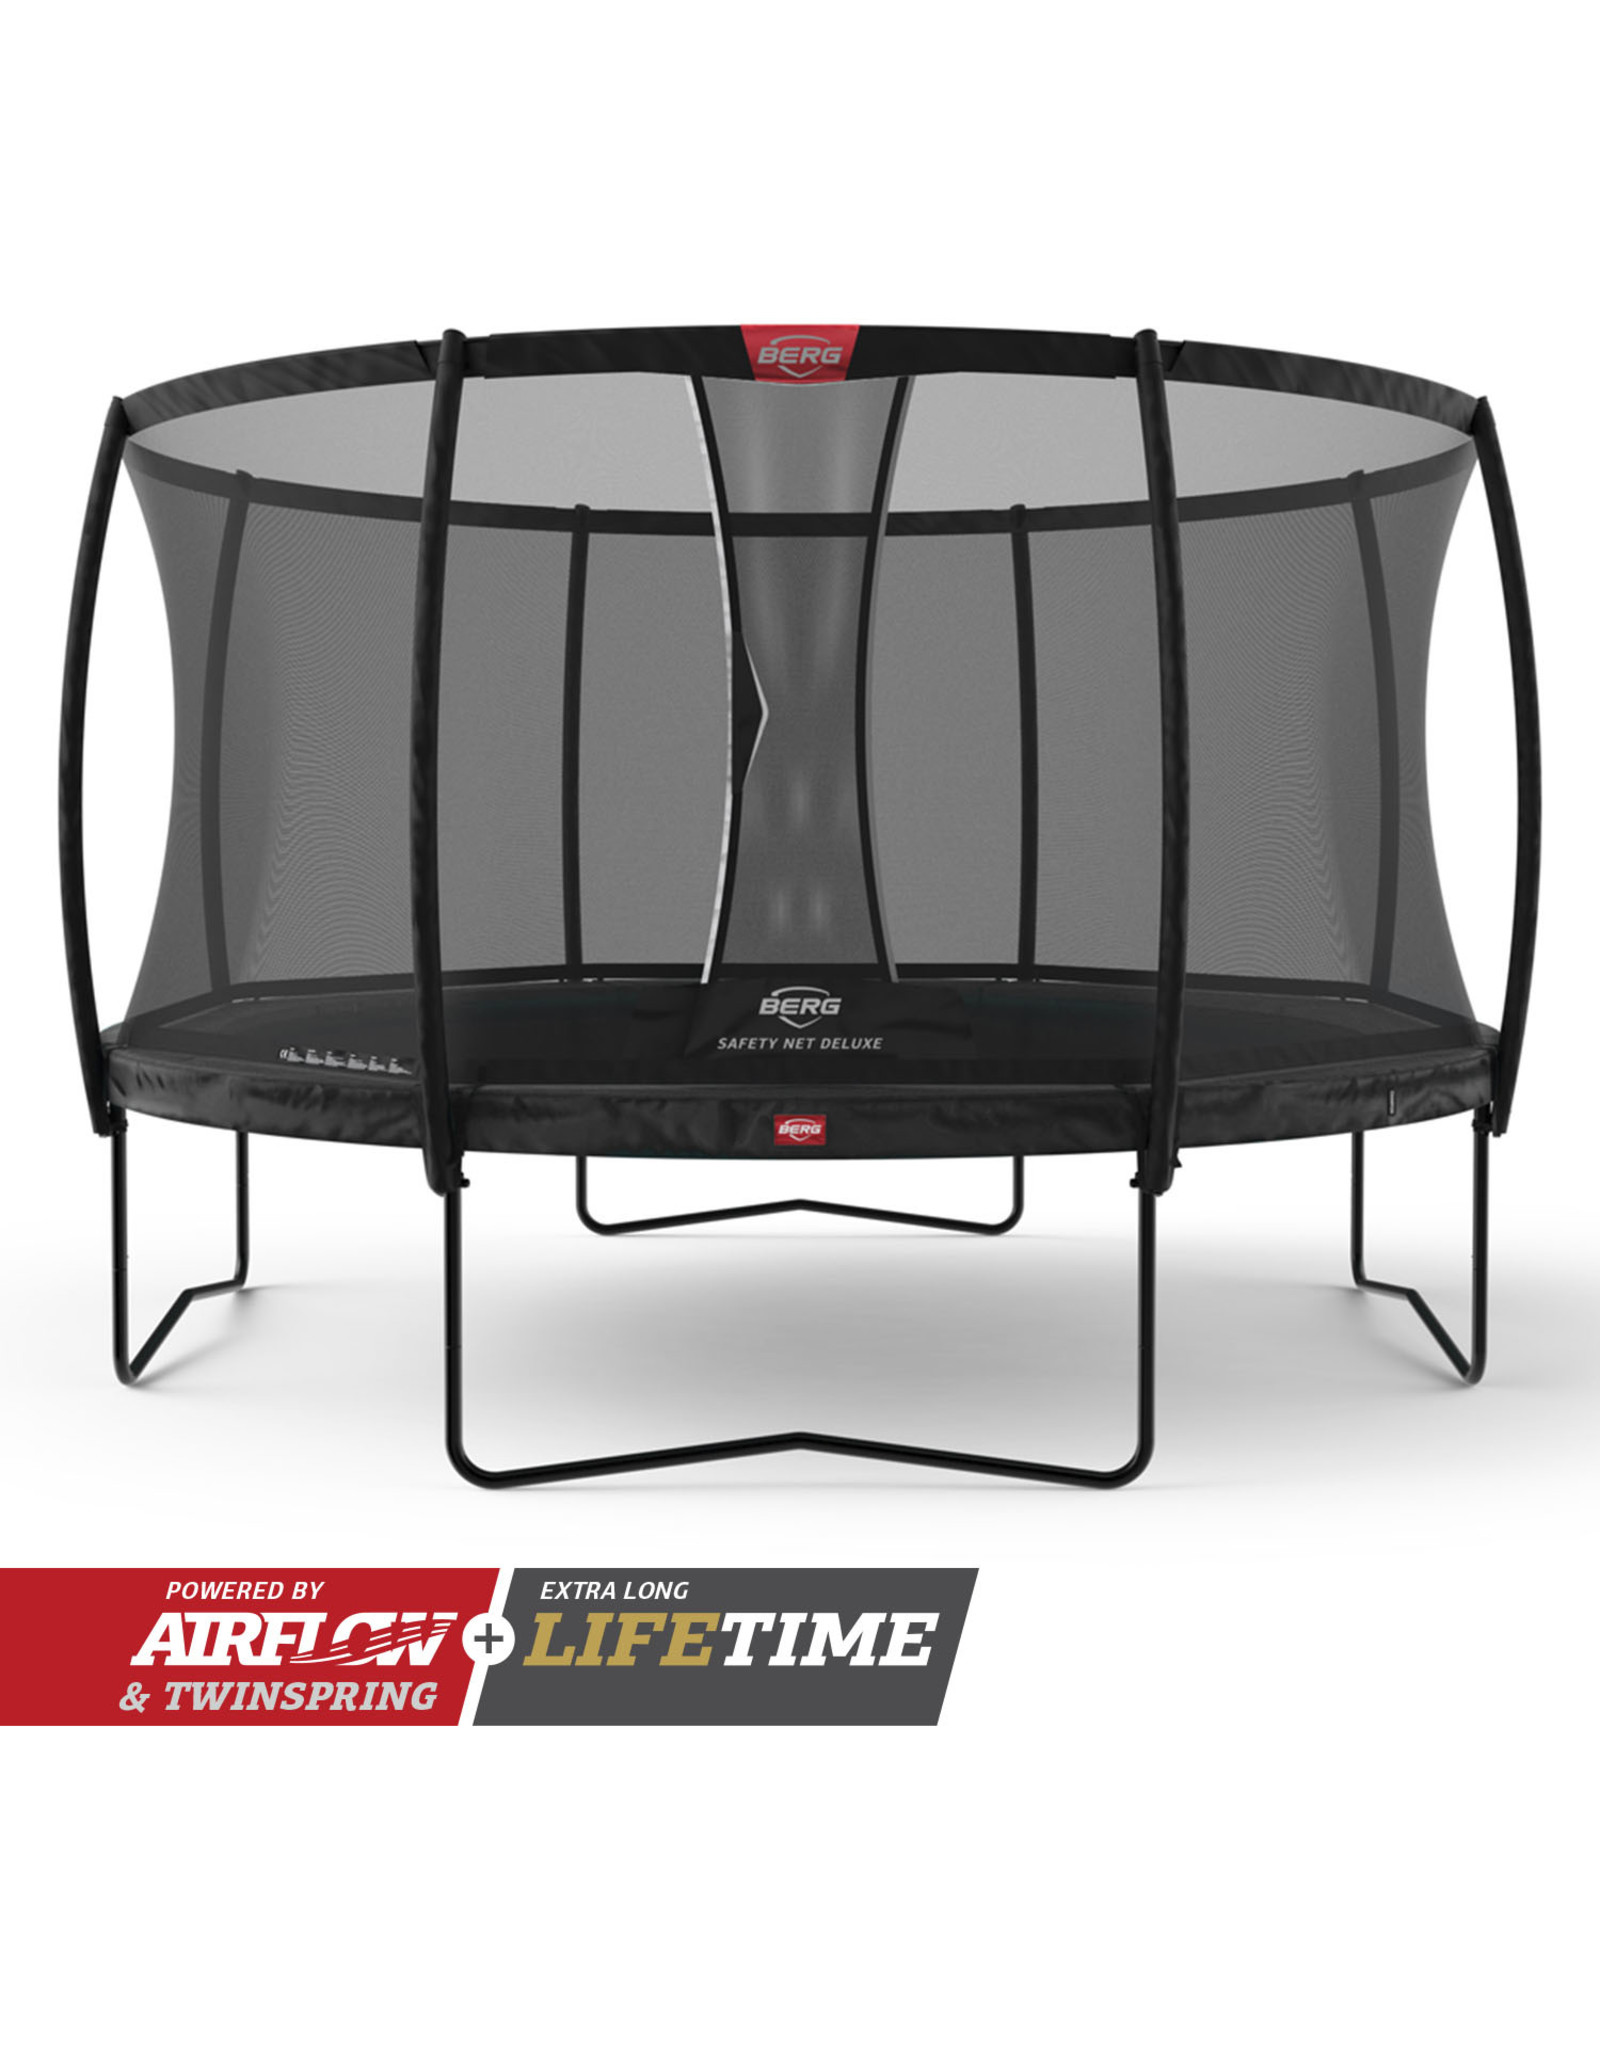 BERG BERG Champion Regular 430 zwart + Safety Net Deluxe